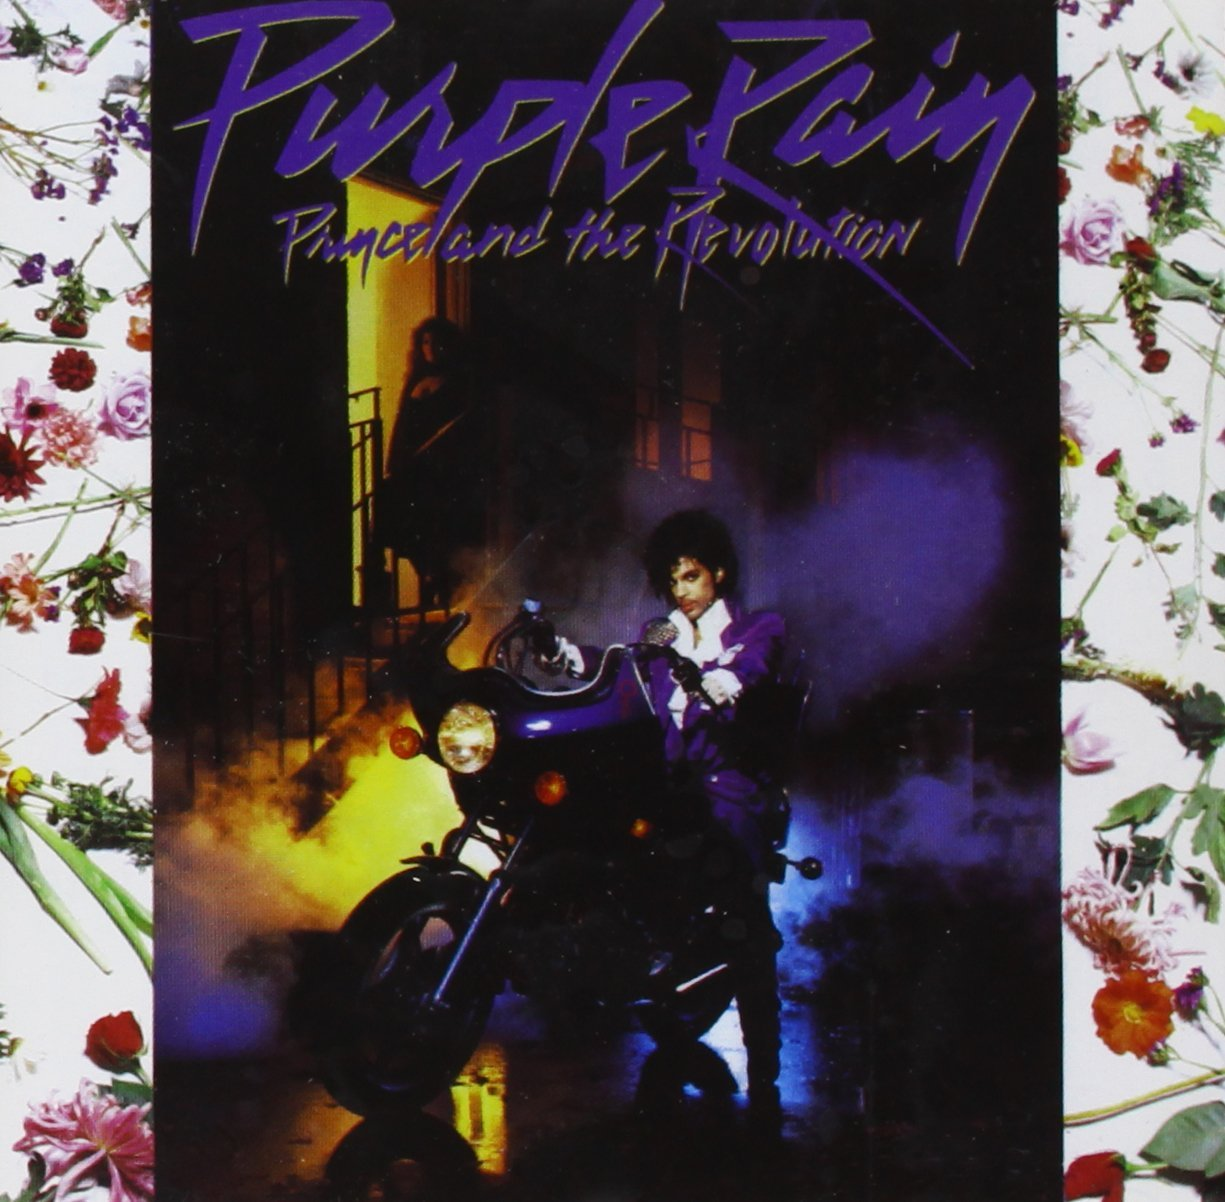 prince purple rain The 100 Greatest Albums of All Time